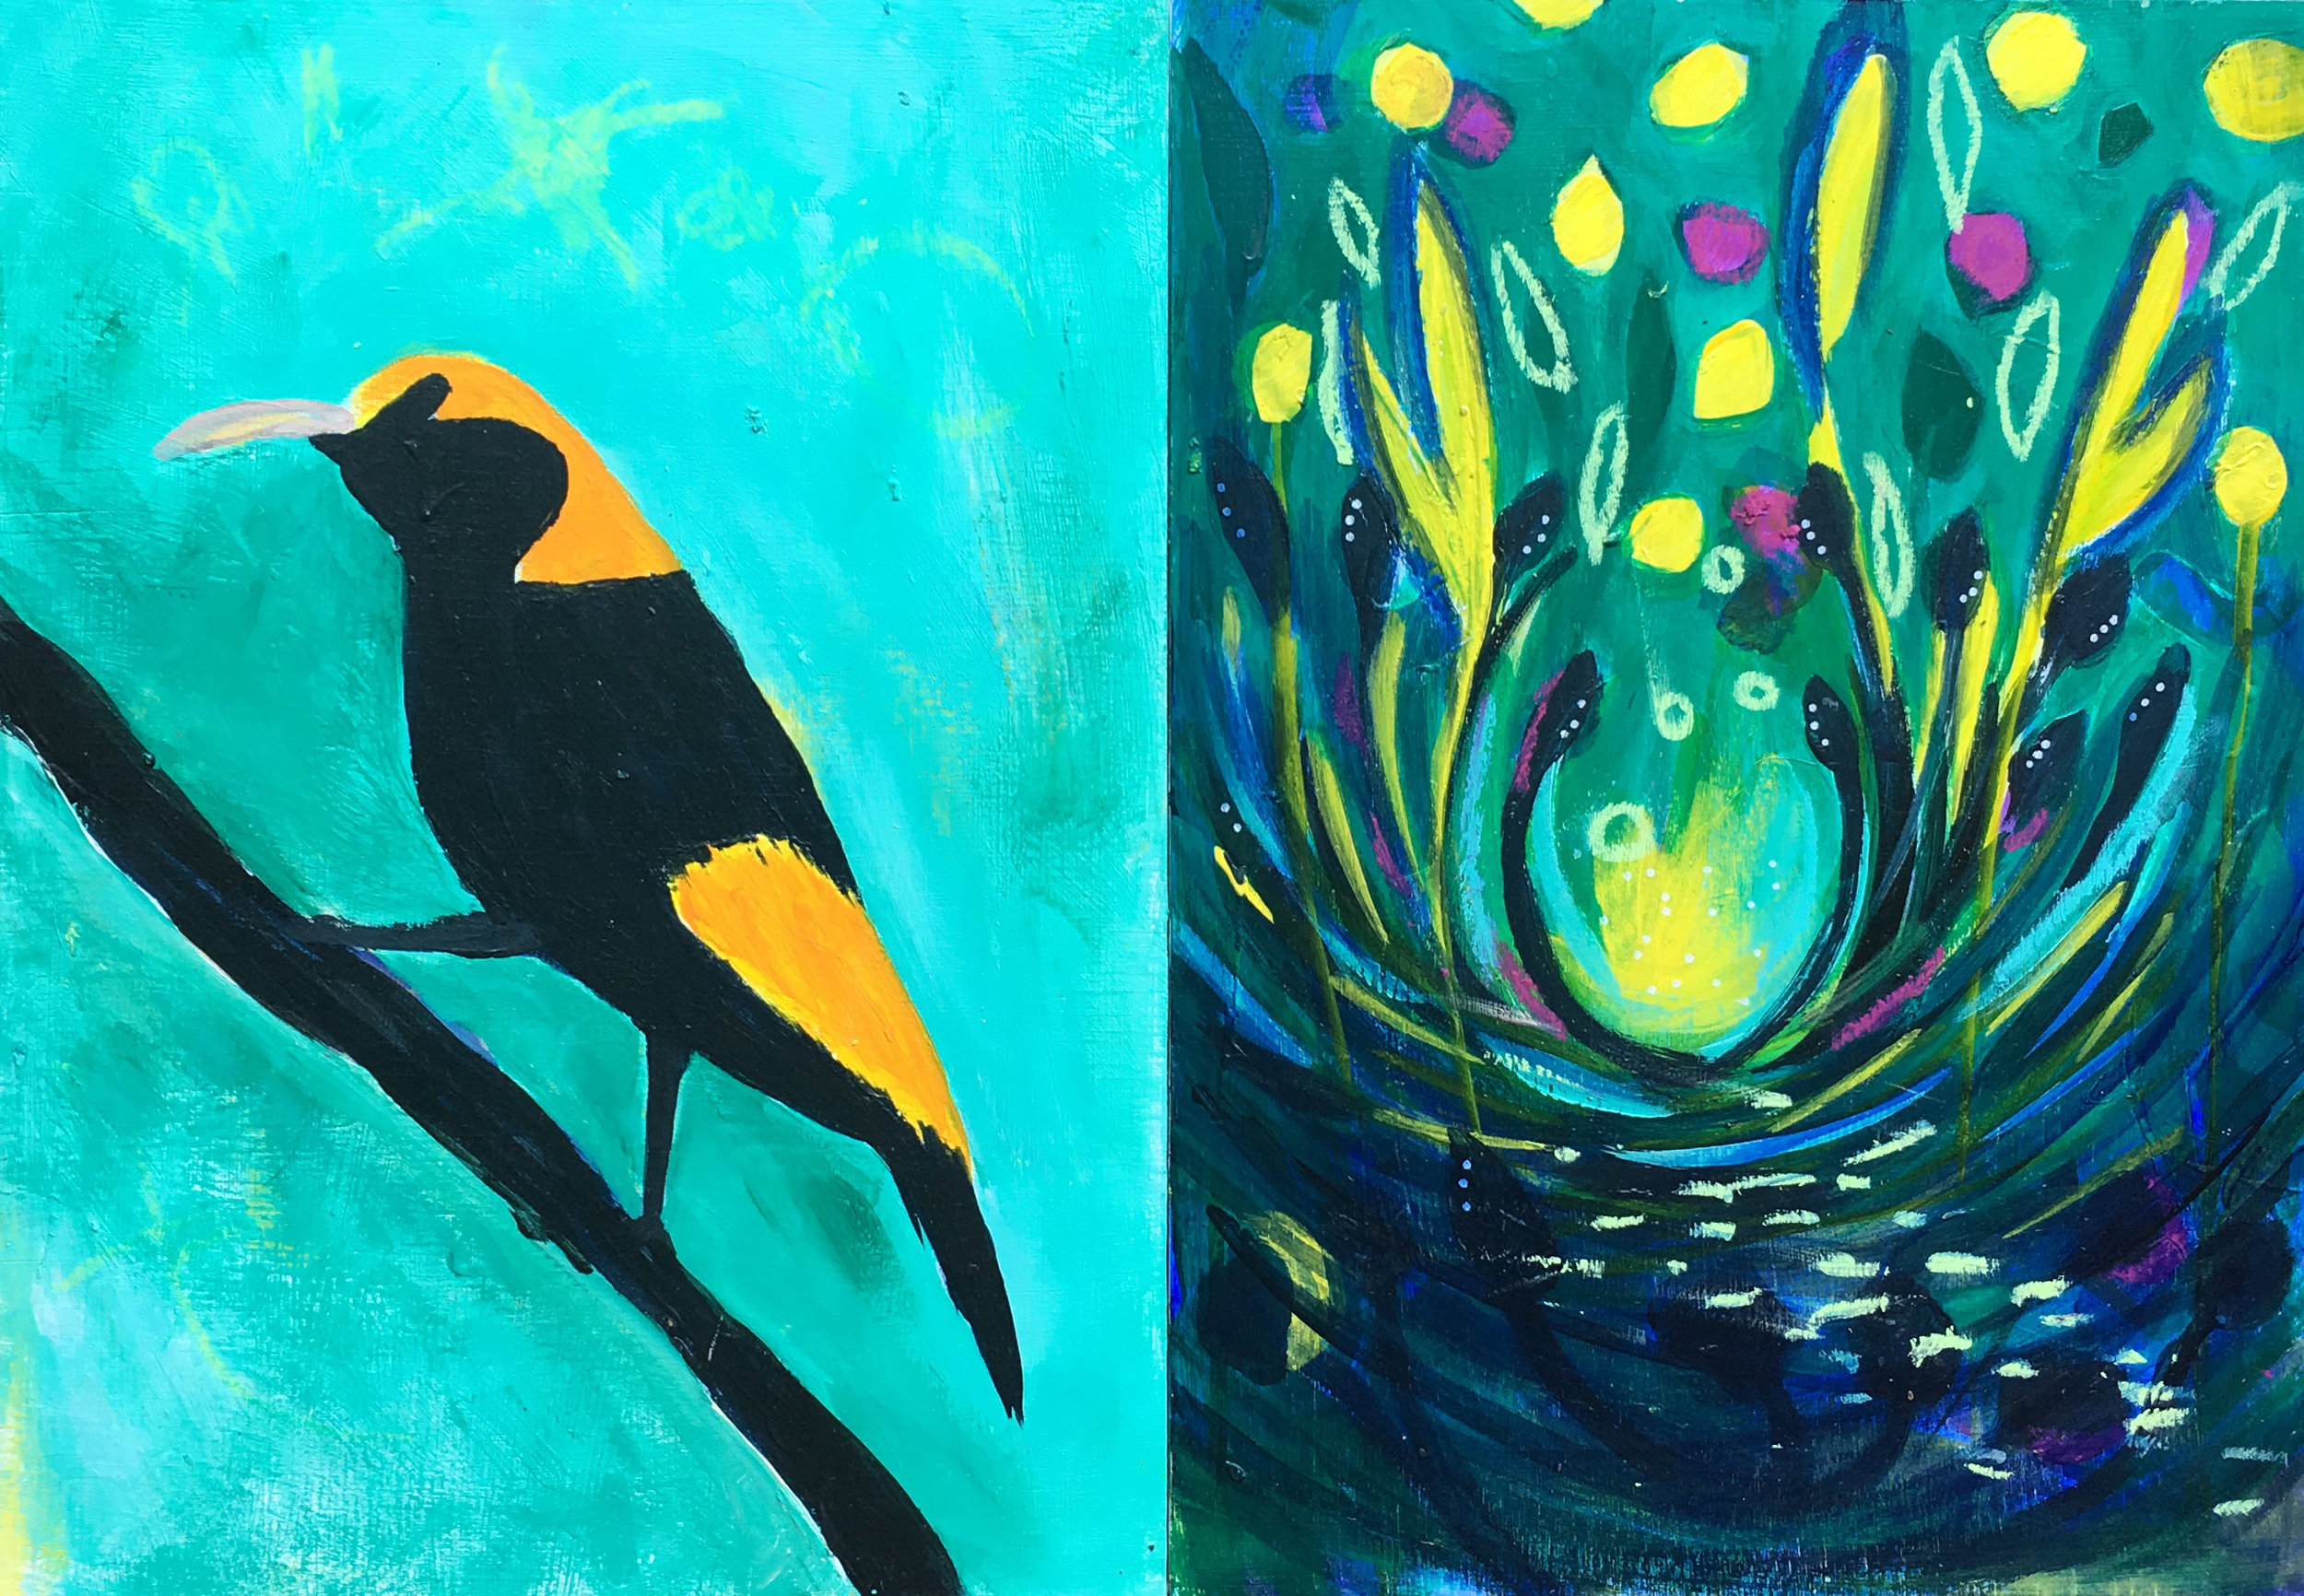 Bird and Bower 2 - Work in progress